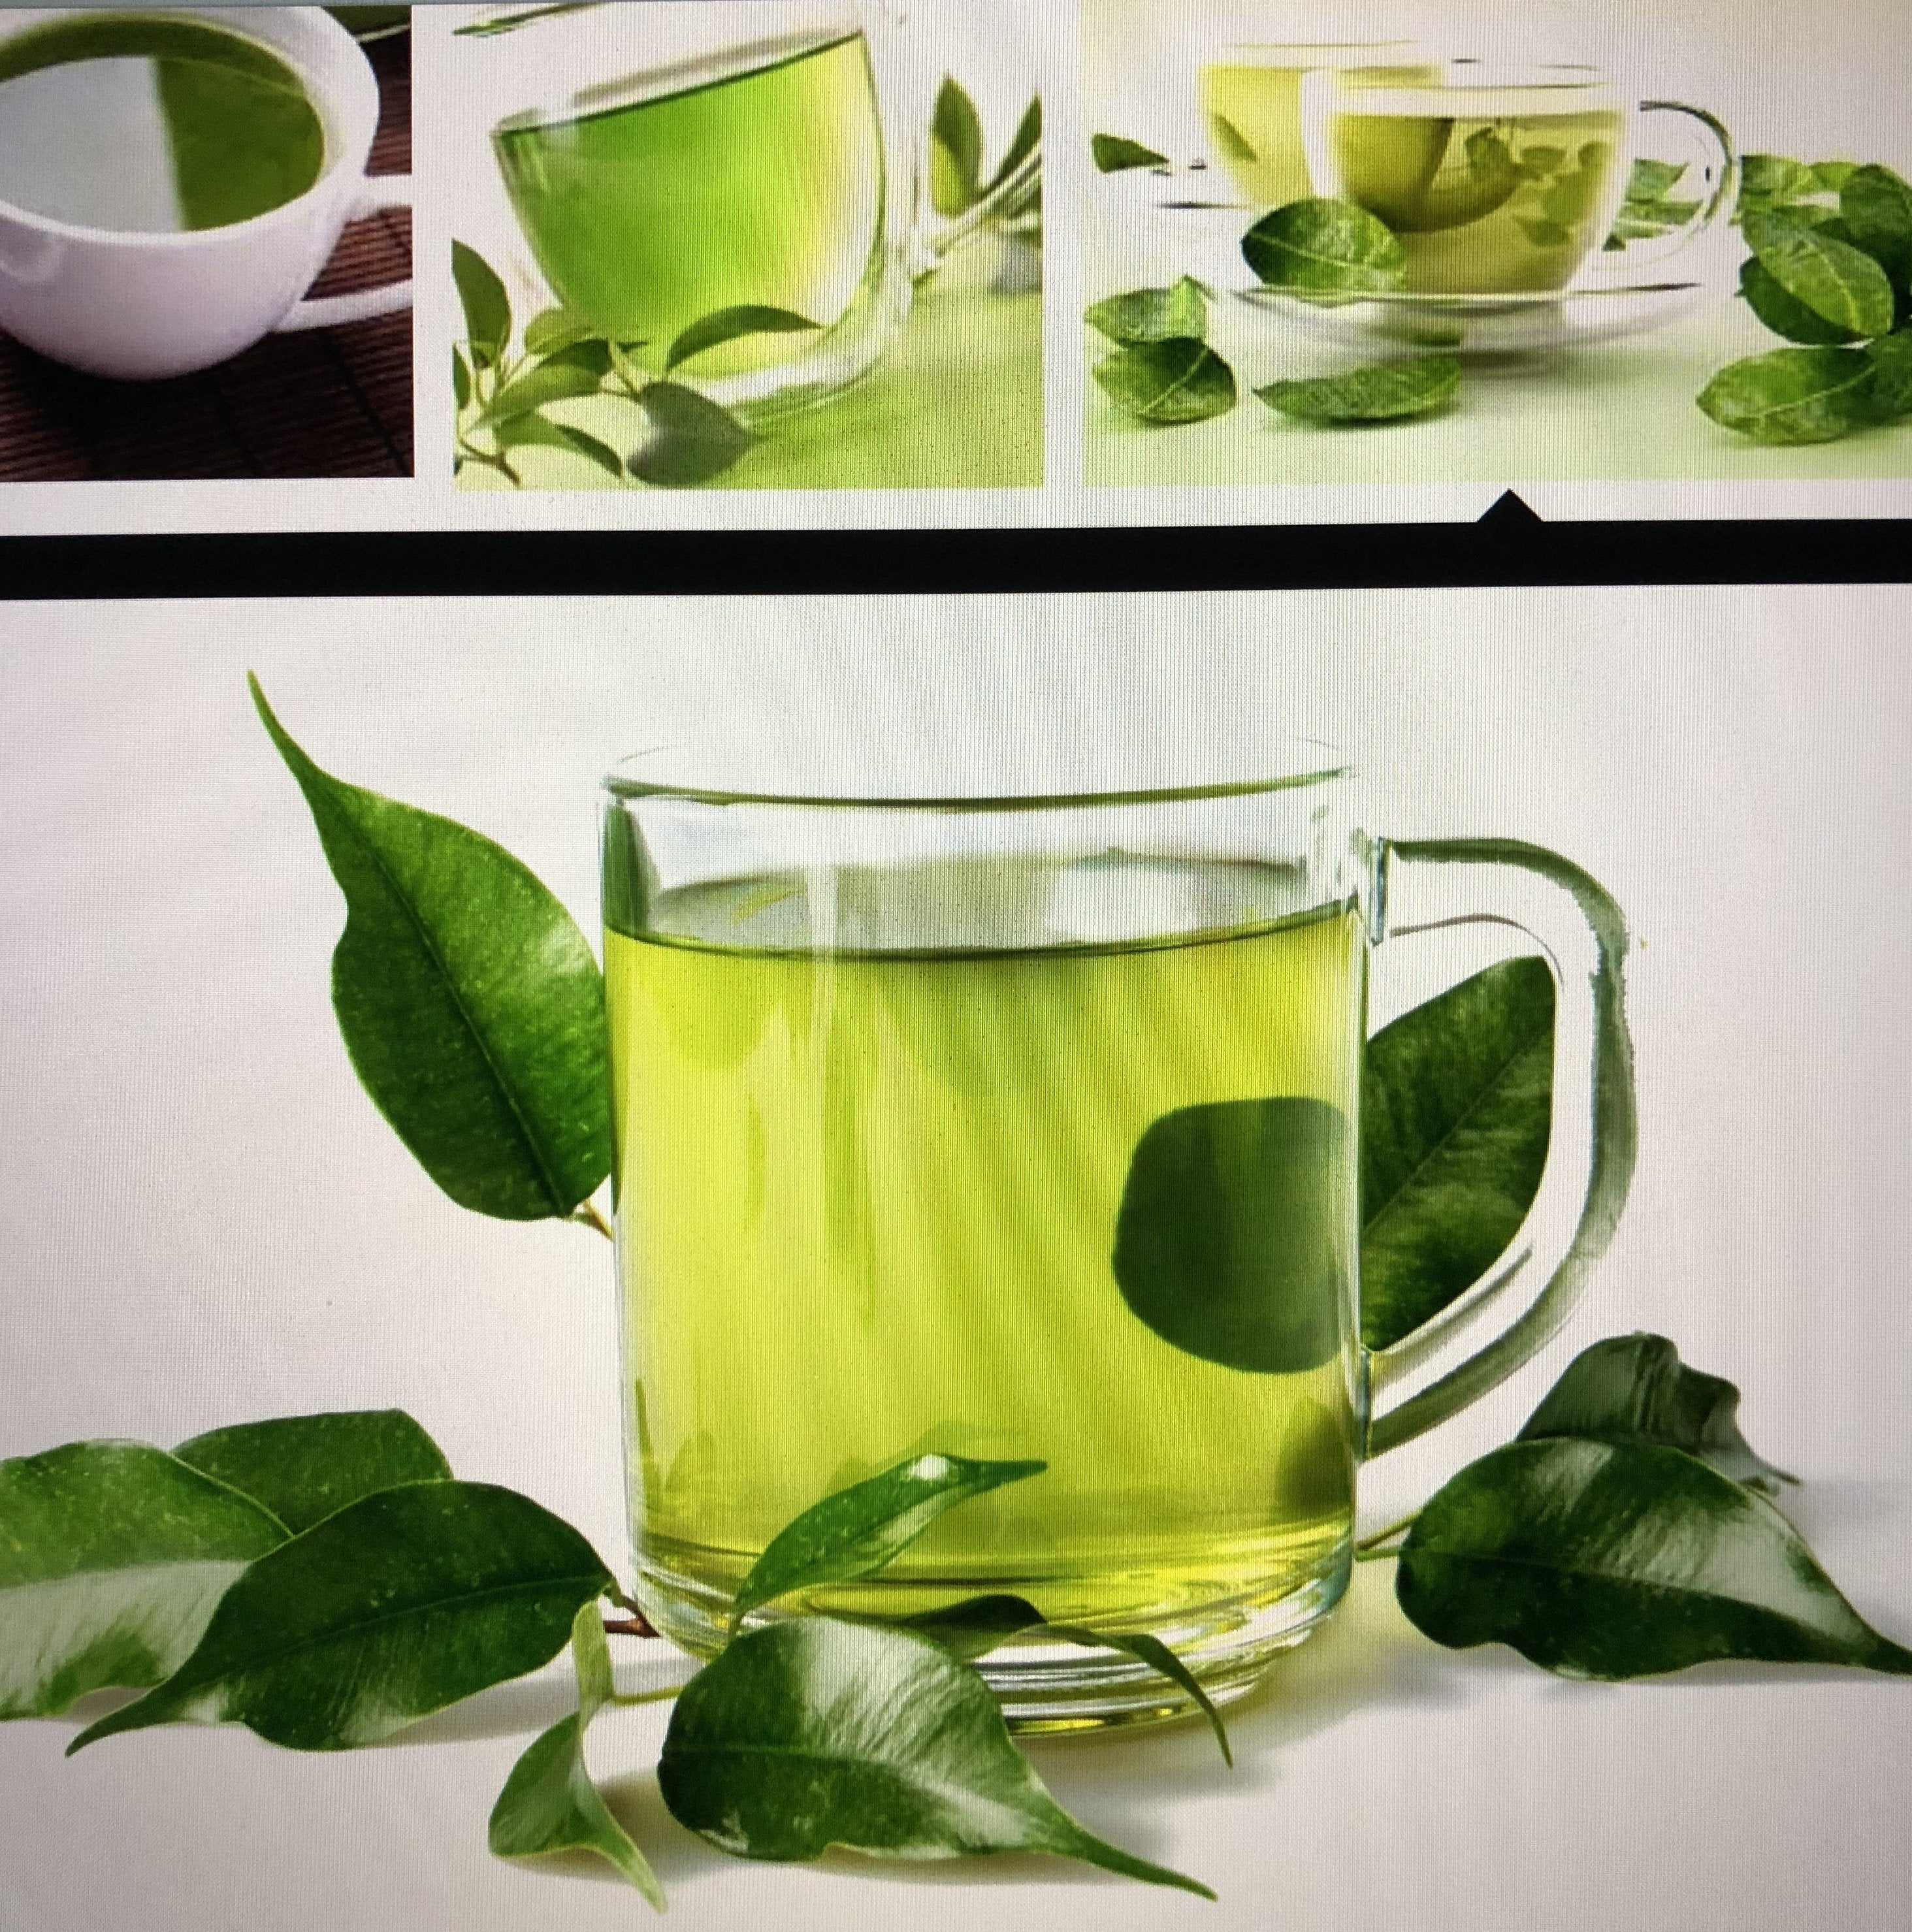 Green Tea: Does it Really Prevent Cancer ? Dr. James Meschino